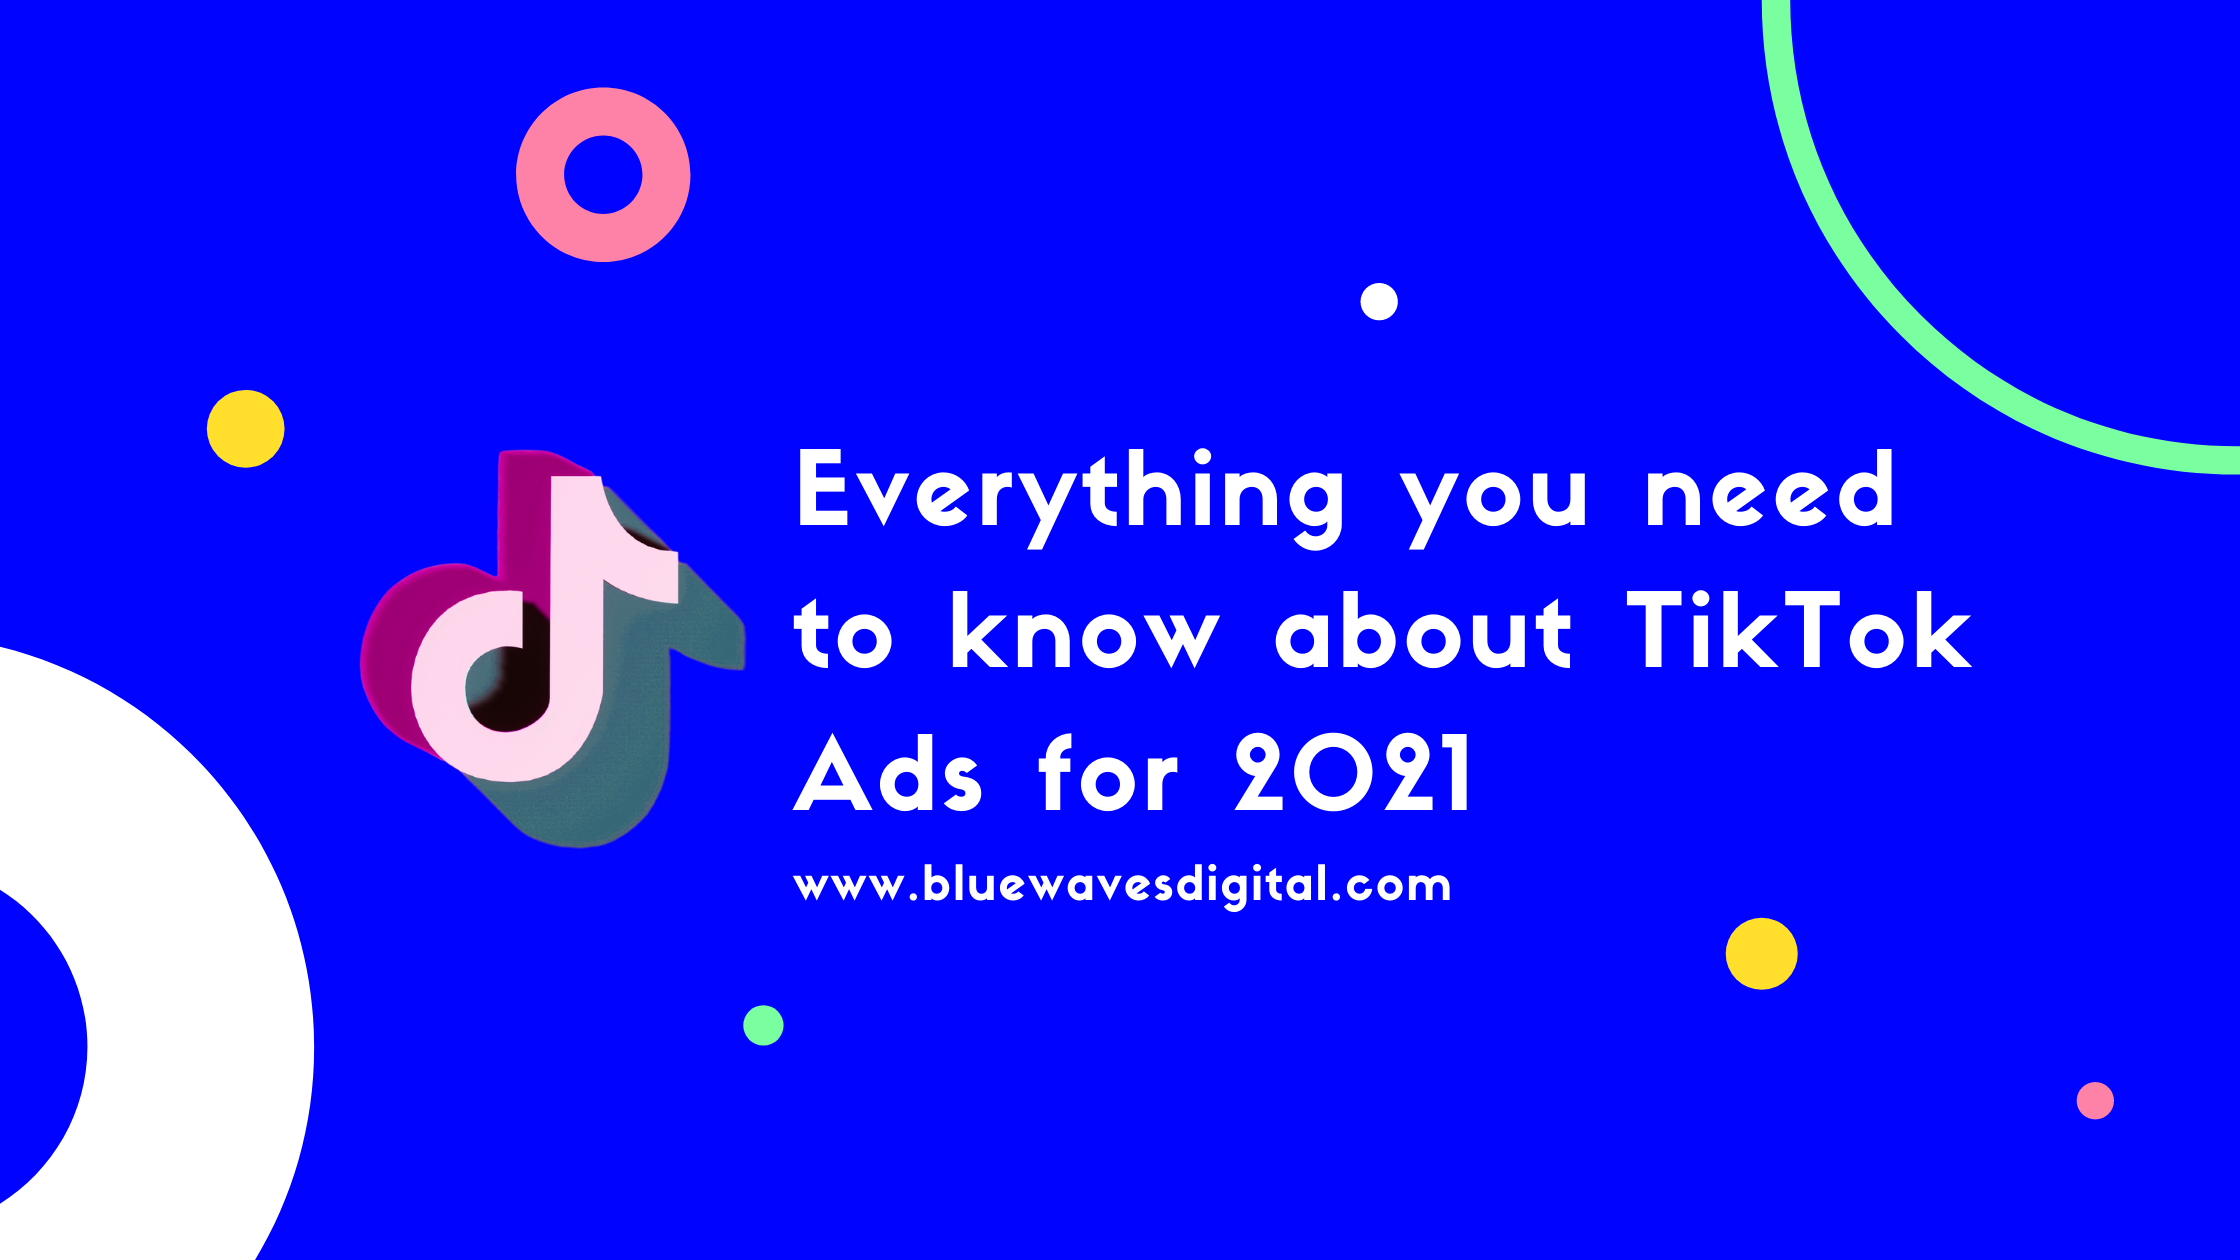 TikTok Ads — Everything You Need To Know For 2021